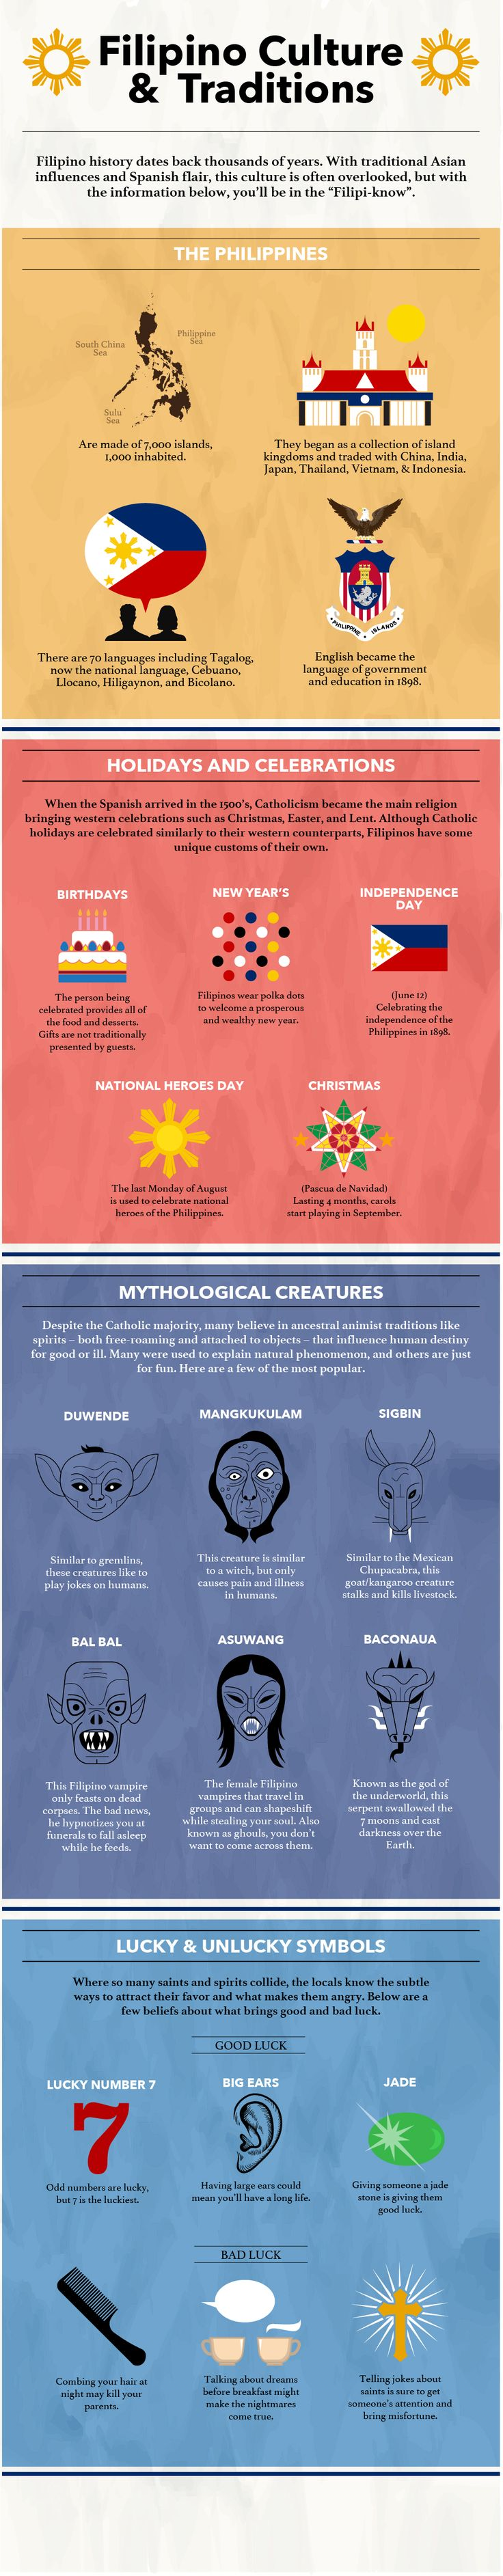 The Philippines have a rich culture steeped with 1,000's of years of history and traditions.  The infographic below will help you learn about this vibrant nation, their beliefs and even discover some of their mythological creatures.  If you continue to scroll down the page, you'll be able to add your own favorite Filipino customs and …